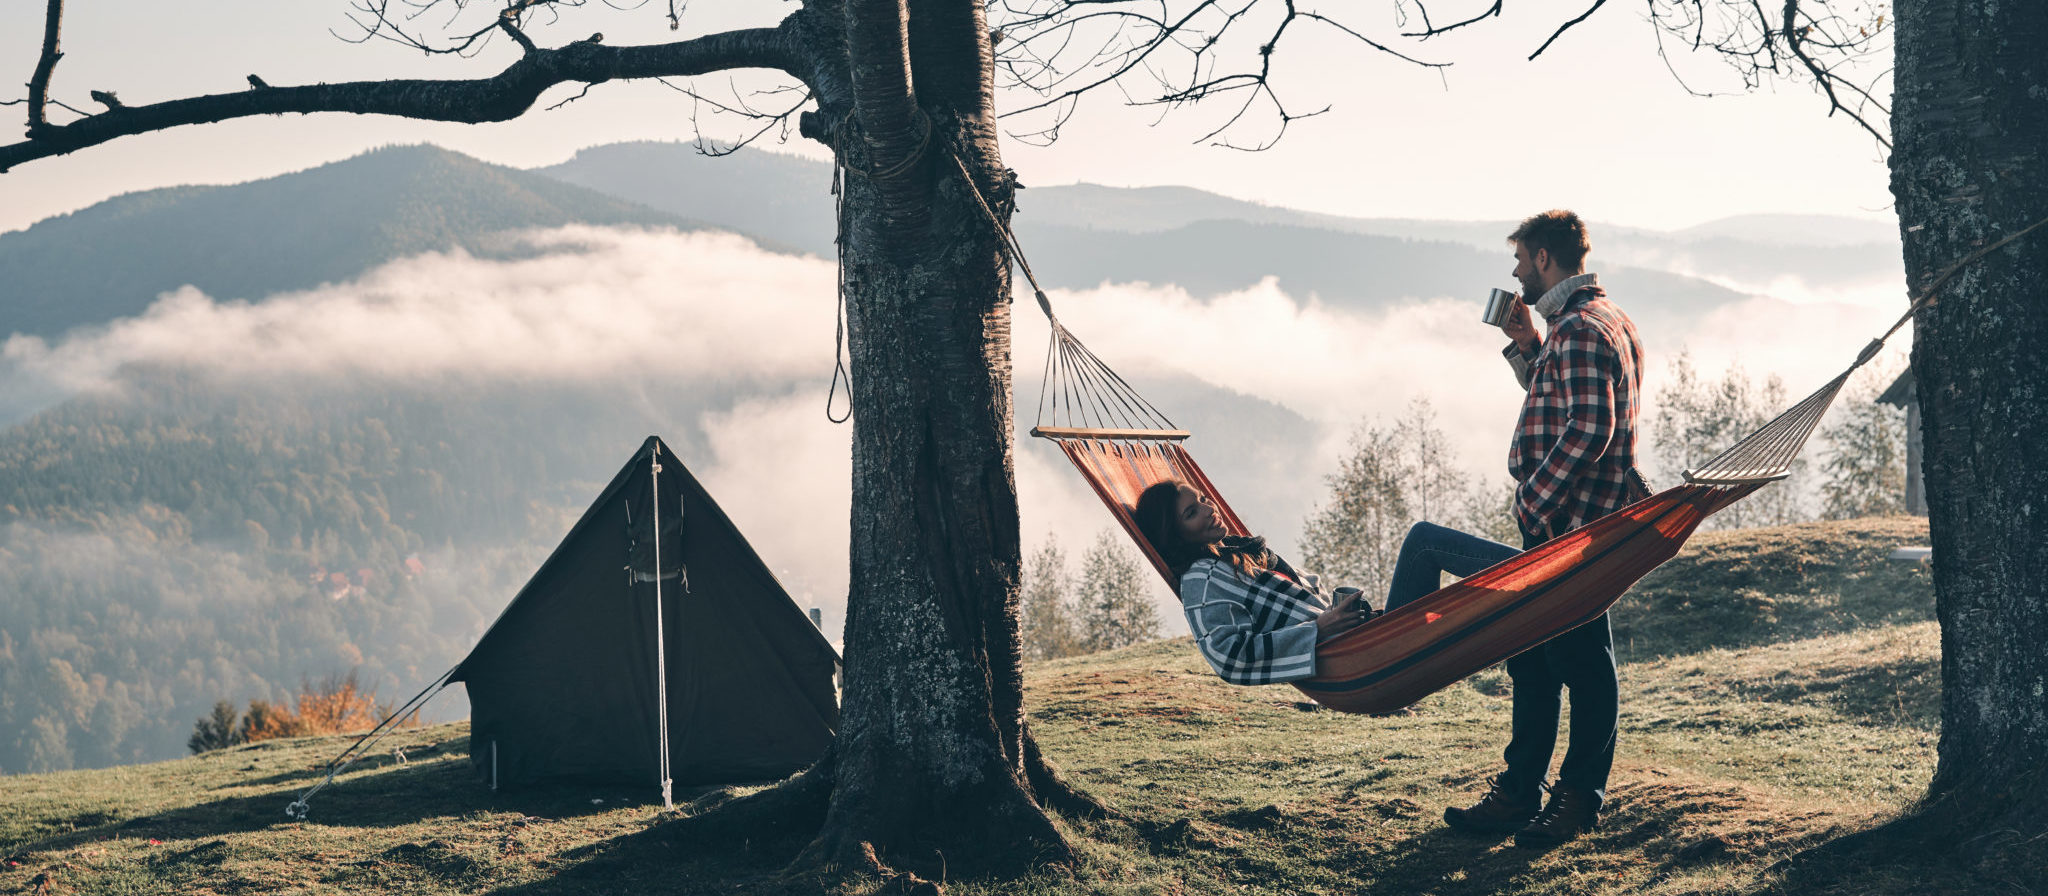 Regardless of whether you choose hammock or tent, a camping trip can be a wonderful romantic getaway